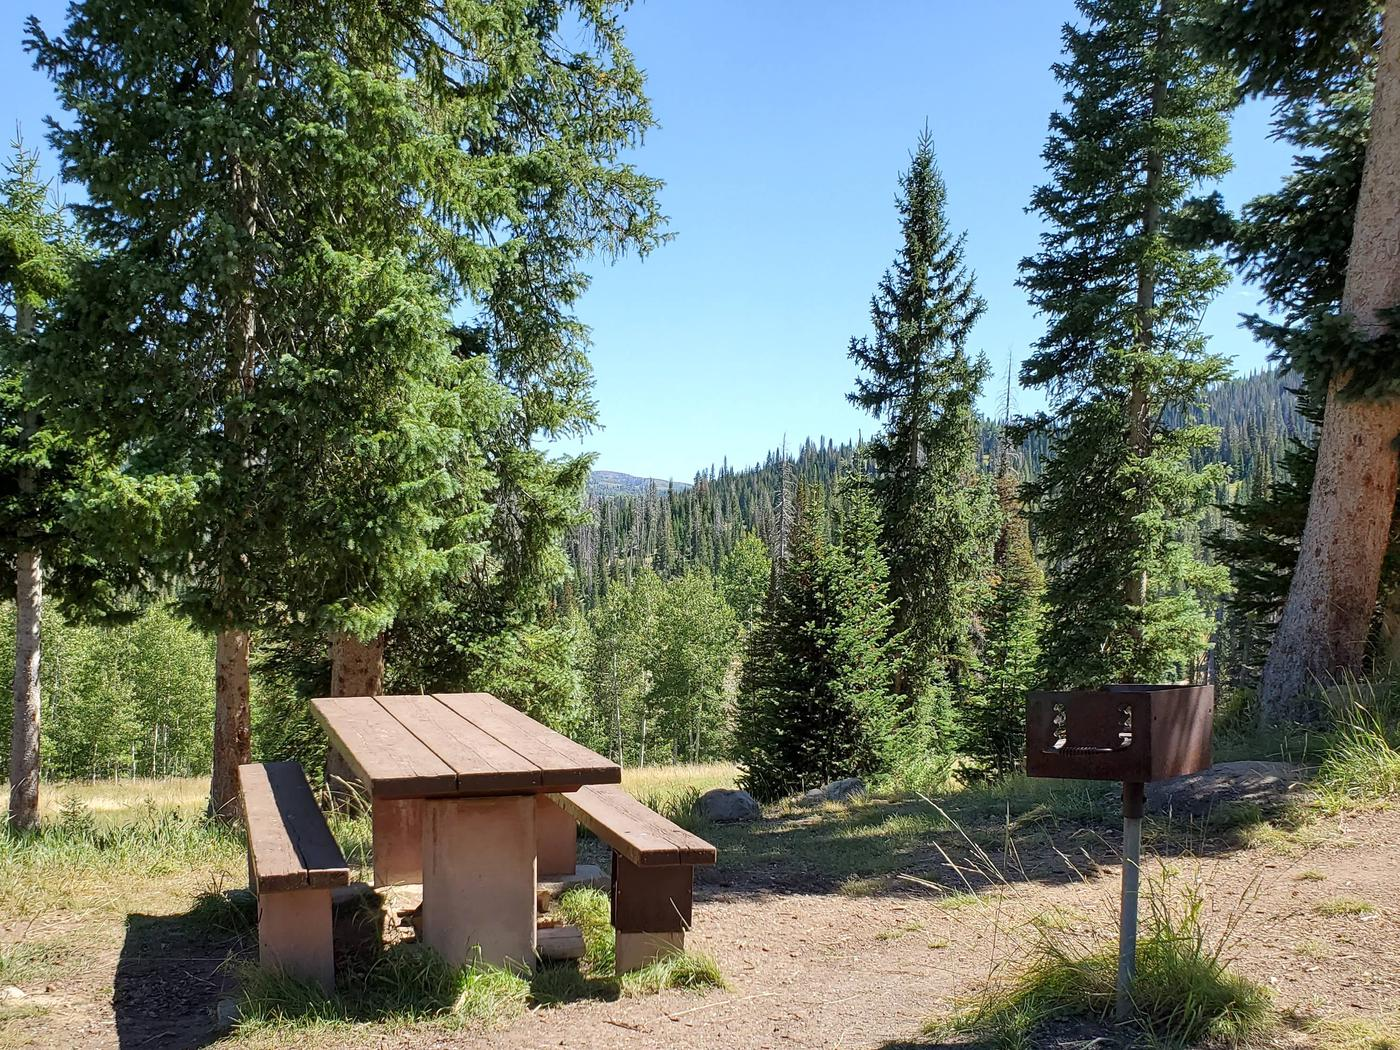 Flat Canyon Campground Site #9